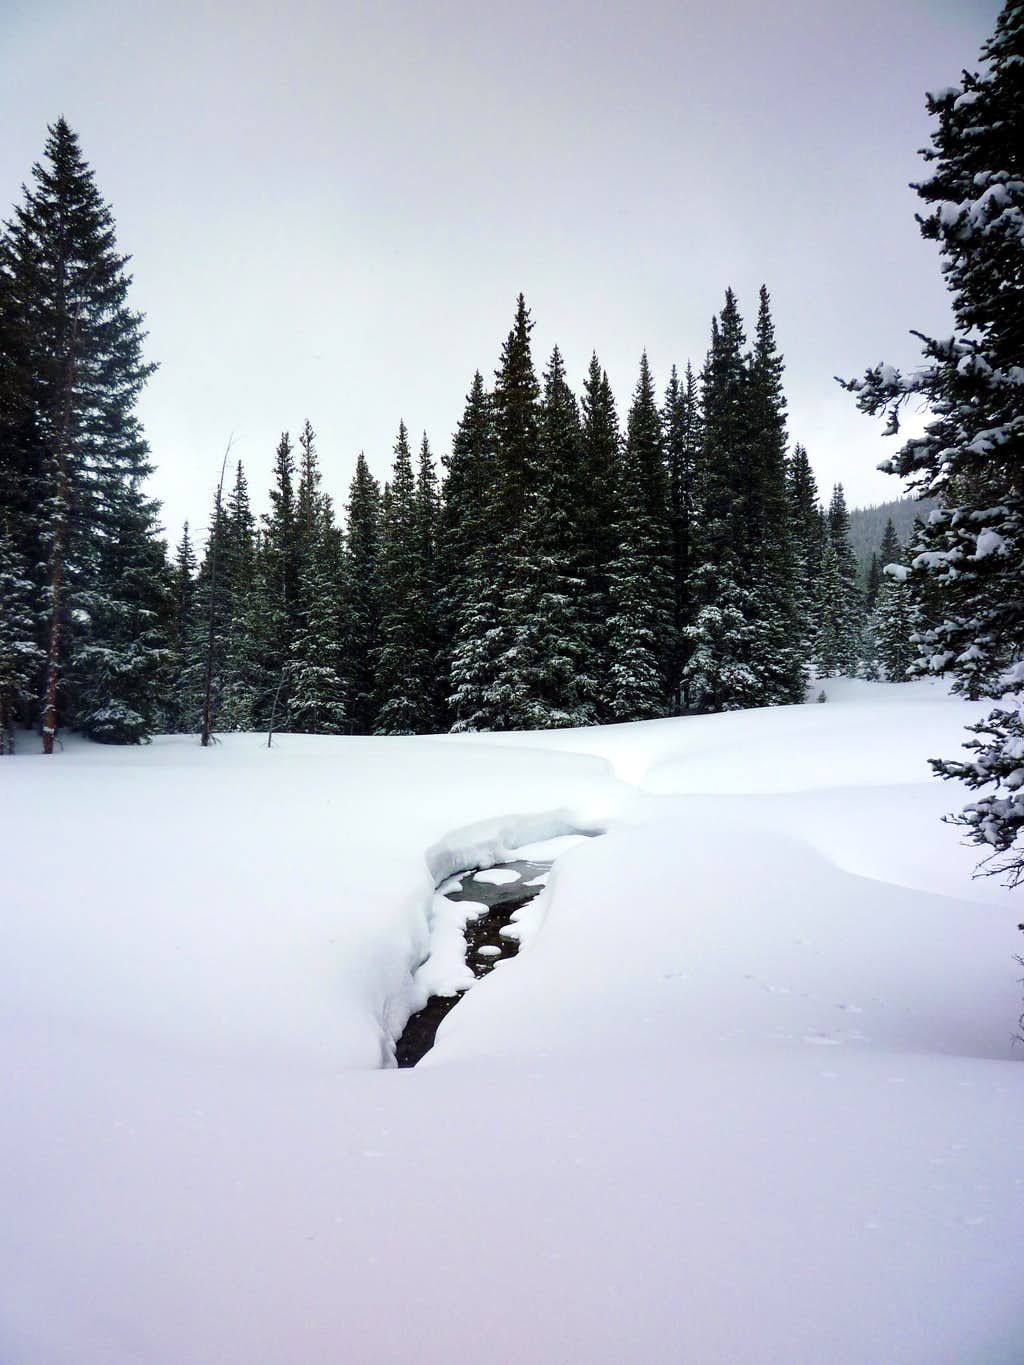 Pillows of snow and stream